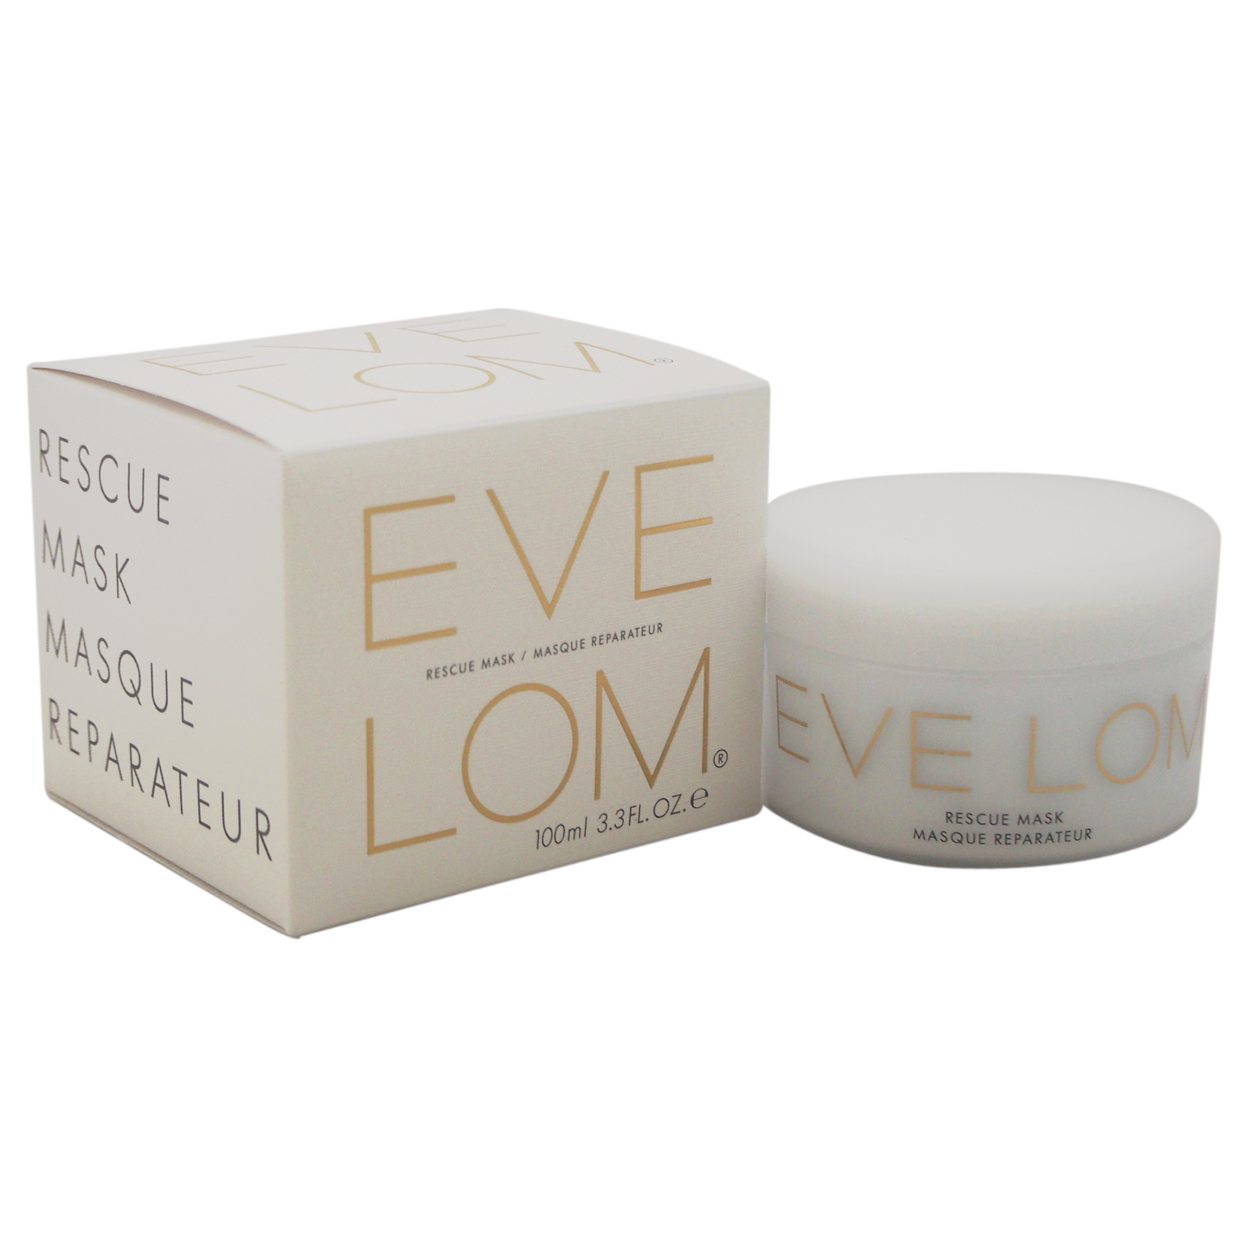 Rescue Mask by Eve Lom for Unisex - 3.3 oz Mask домкрат lom 1550271